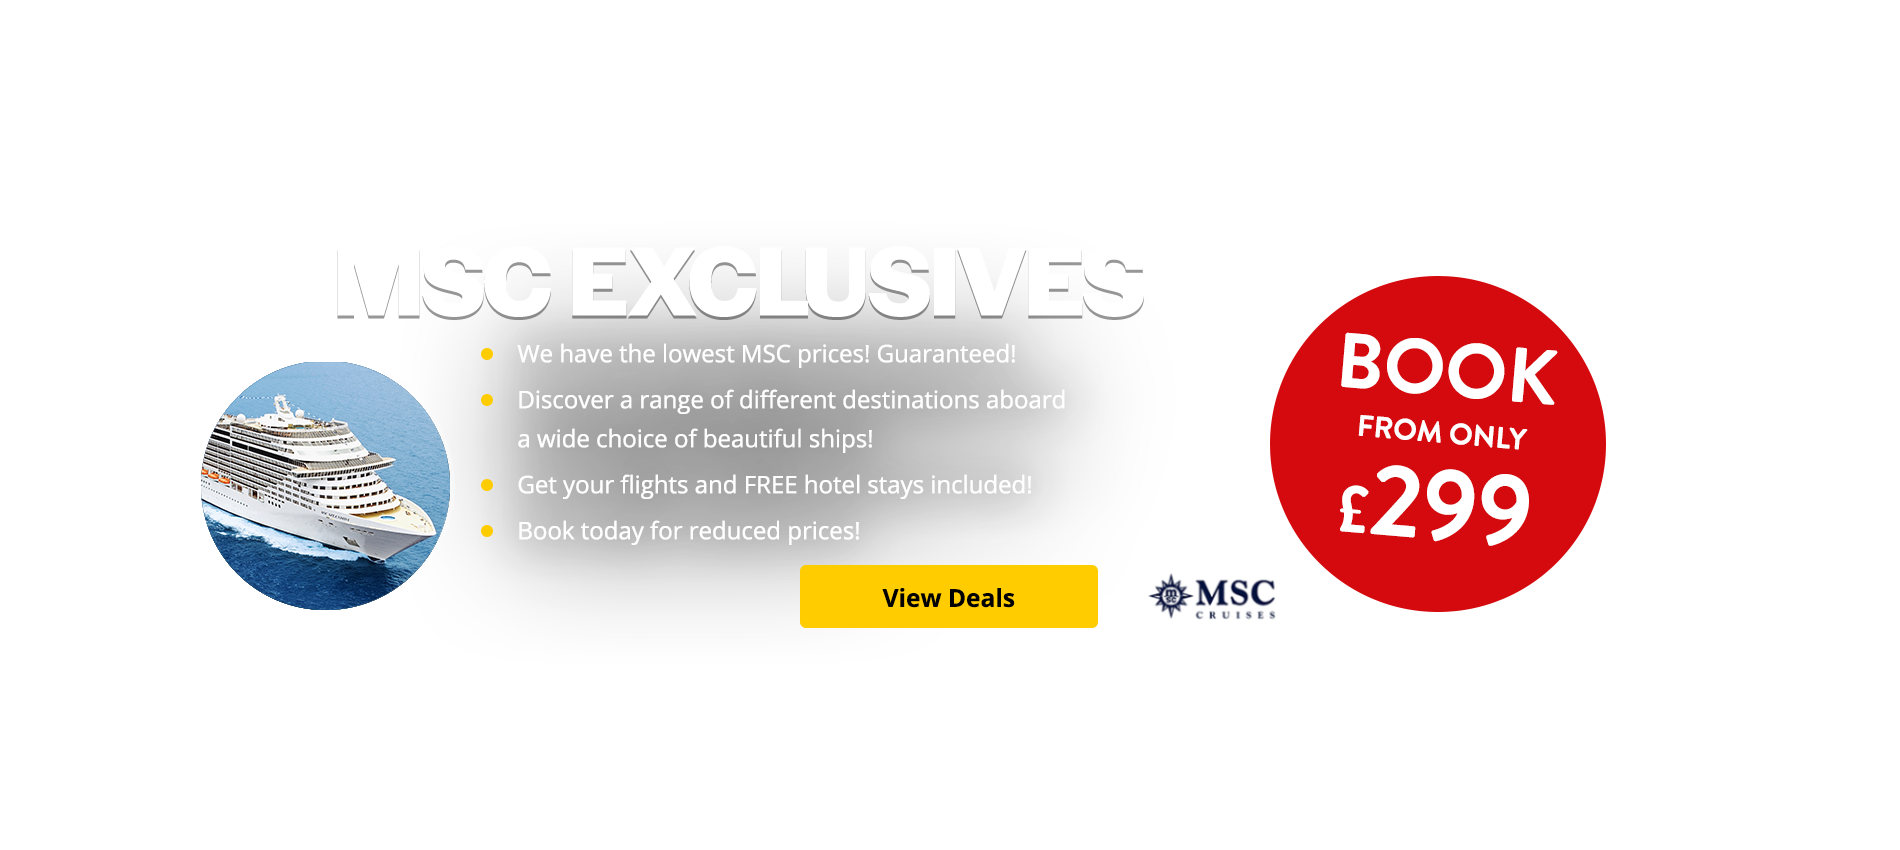 We have the lowest MSC prices! Guarenteed! Discover a range of different destinations aboard a wide choice of beautiful ships! Get your flights and FREE hotel stays included! Book today for reduced prices!